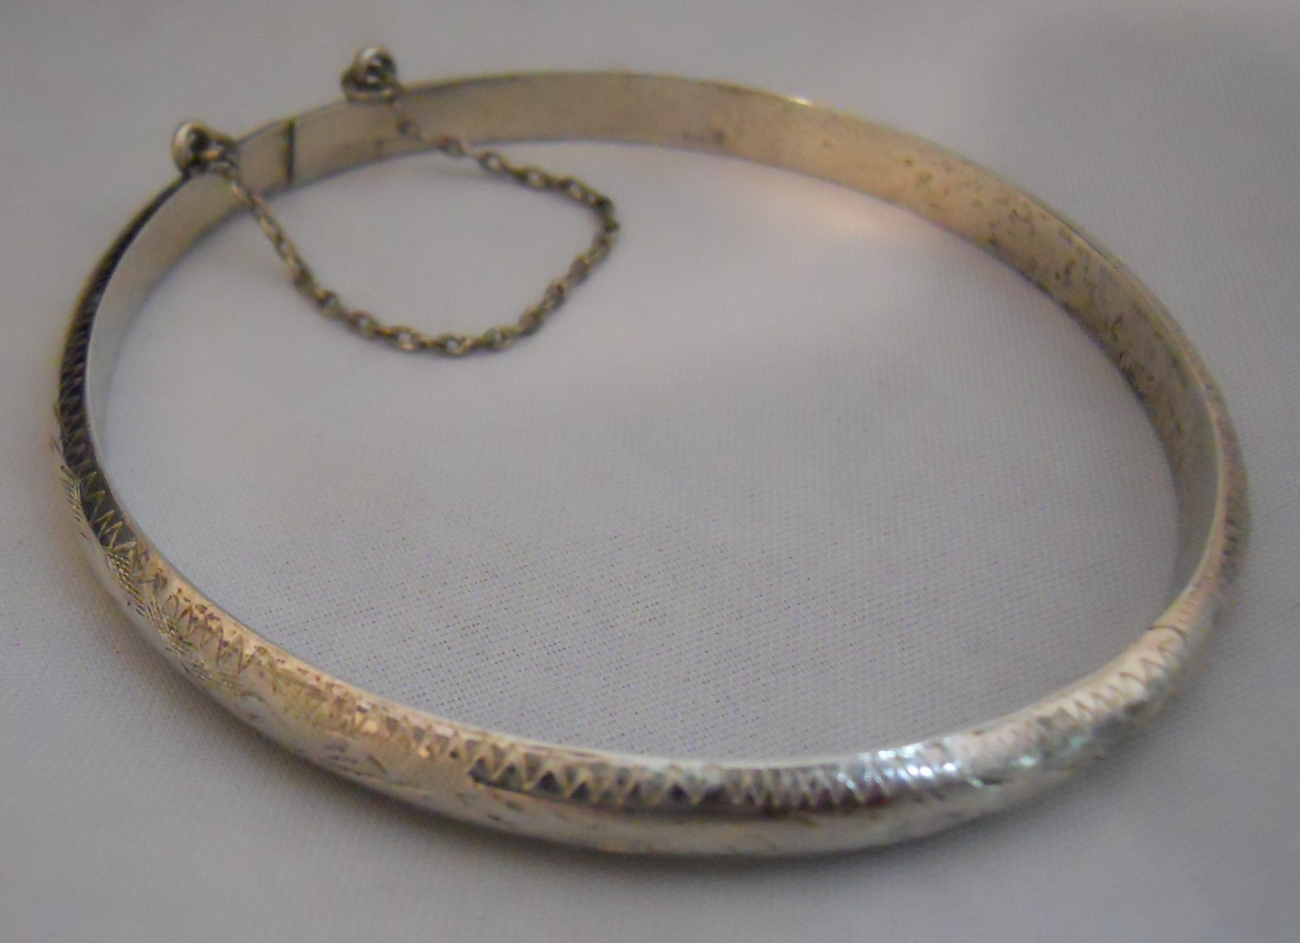 Vintage 925 Sterling Silver Hinged Bangle Bracelet. Sterling Silver Medallion. Earrings Beads. Teardrop Engagement Rings. Old Gold Chains. Gold And Pearl Bangle Bracelet. Pure Gold Jewellery. Happy Watches. African Diamond